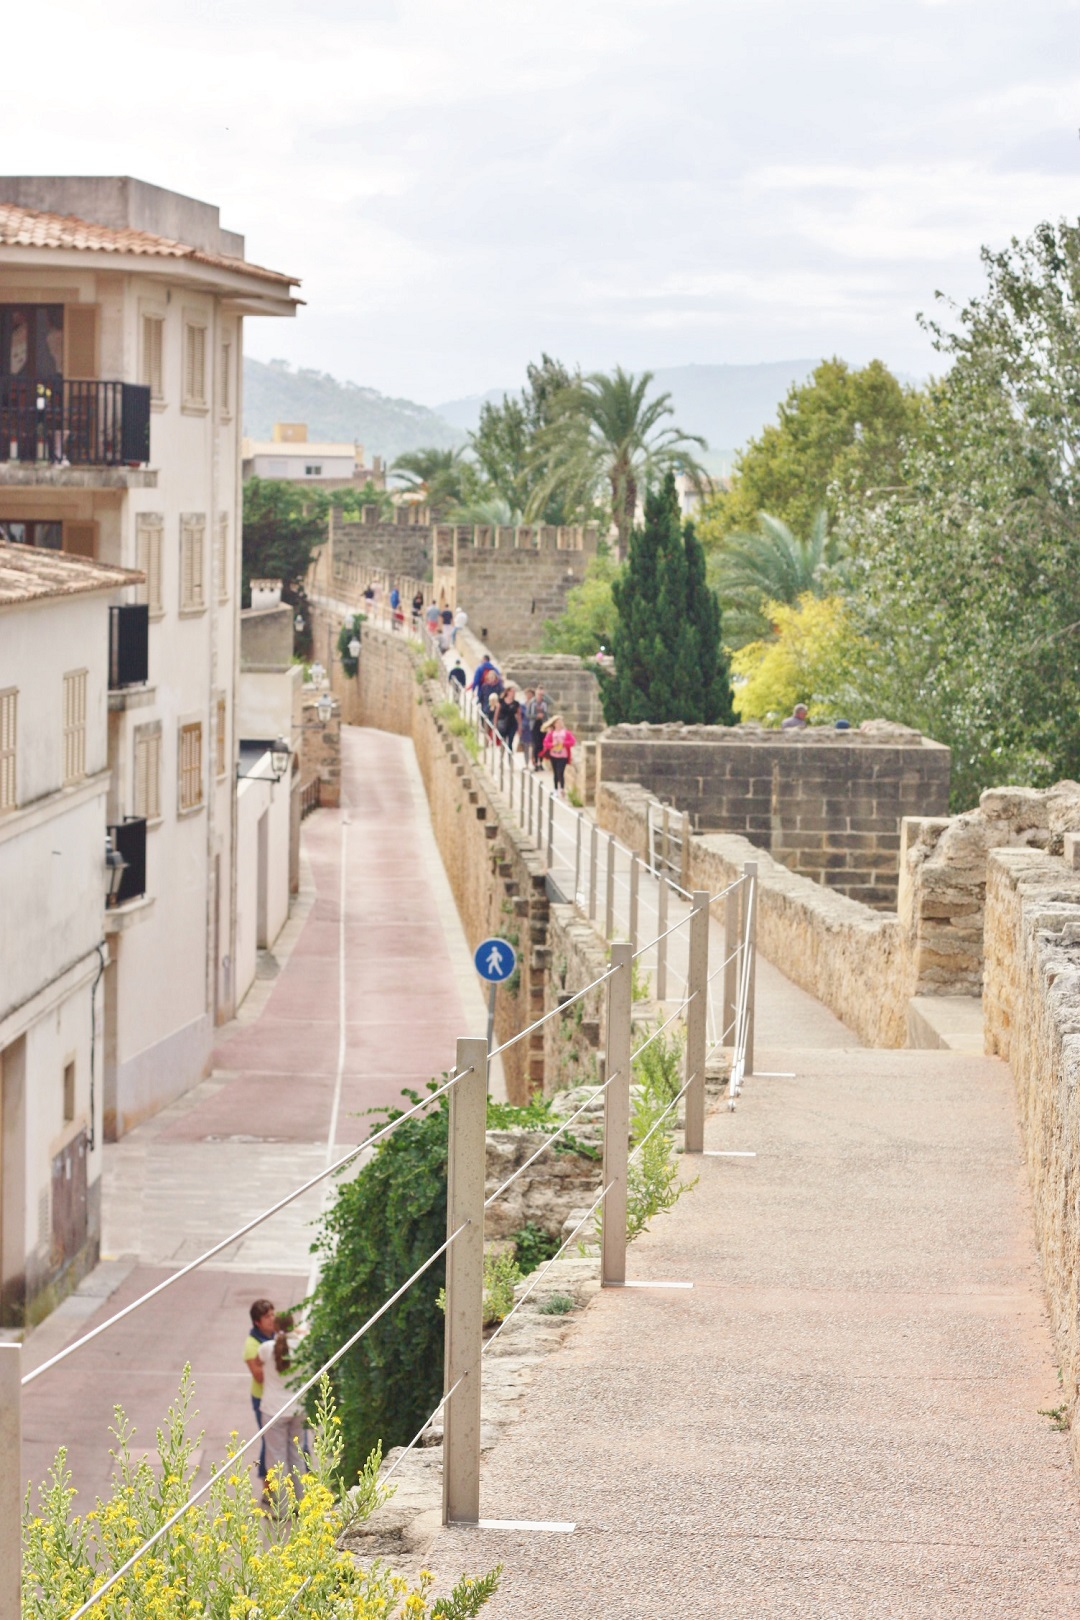 Autumn-Escapes-In-Mallorca-Arta-Inca-Alcudia-22